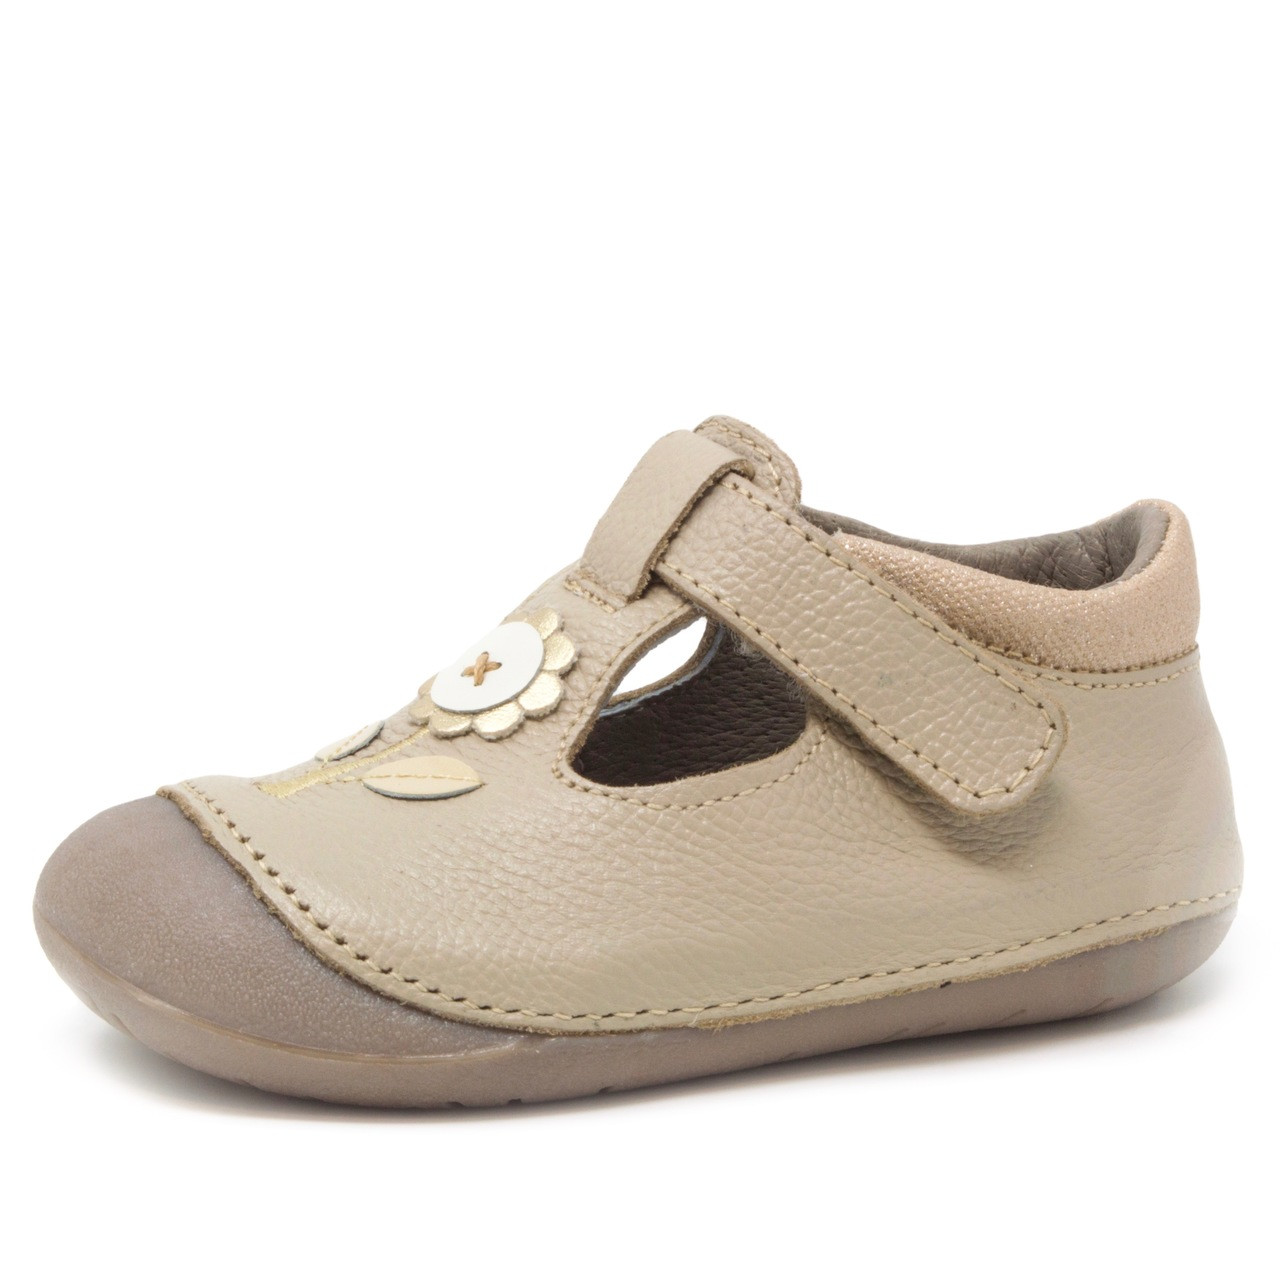 Wobbly Waddlers Natura Poppy Baby Toddler Girl Leather Shoes Arch Support